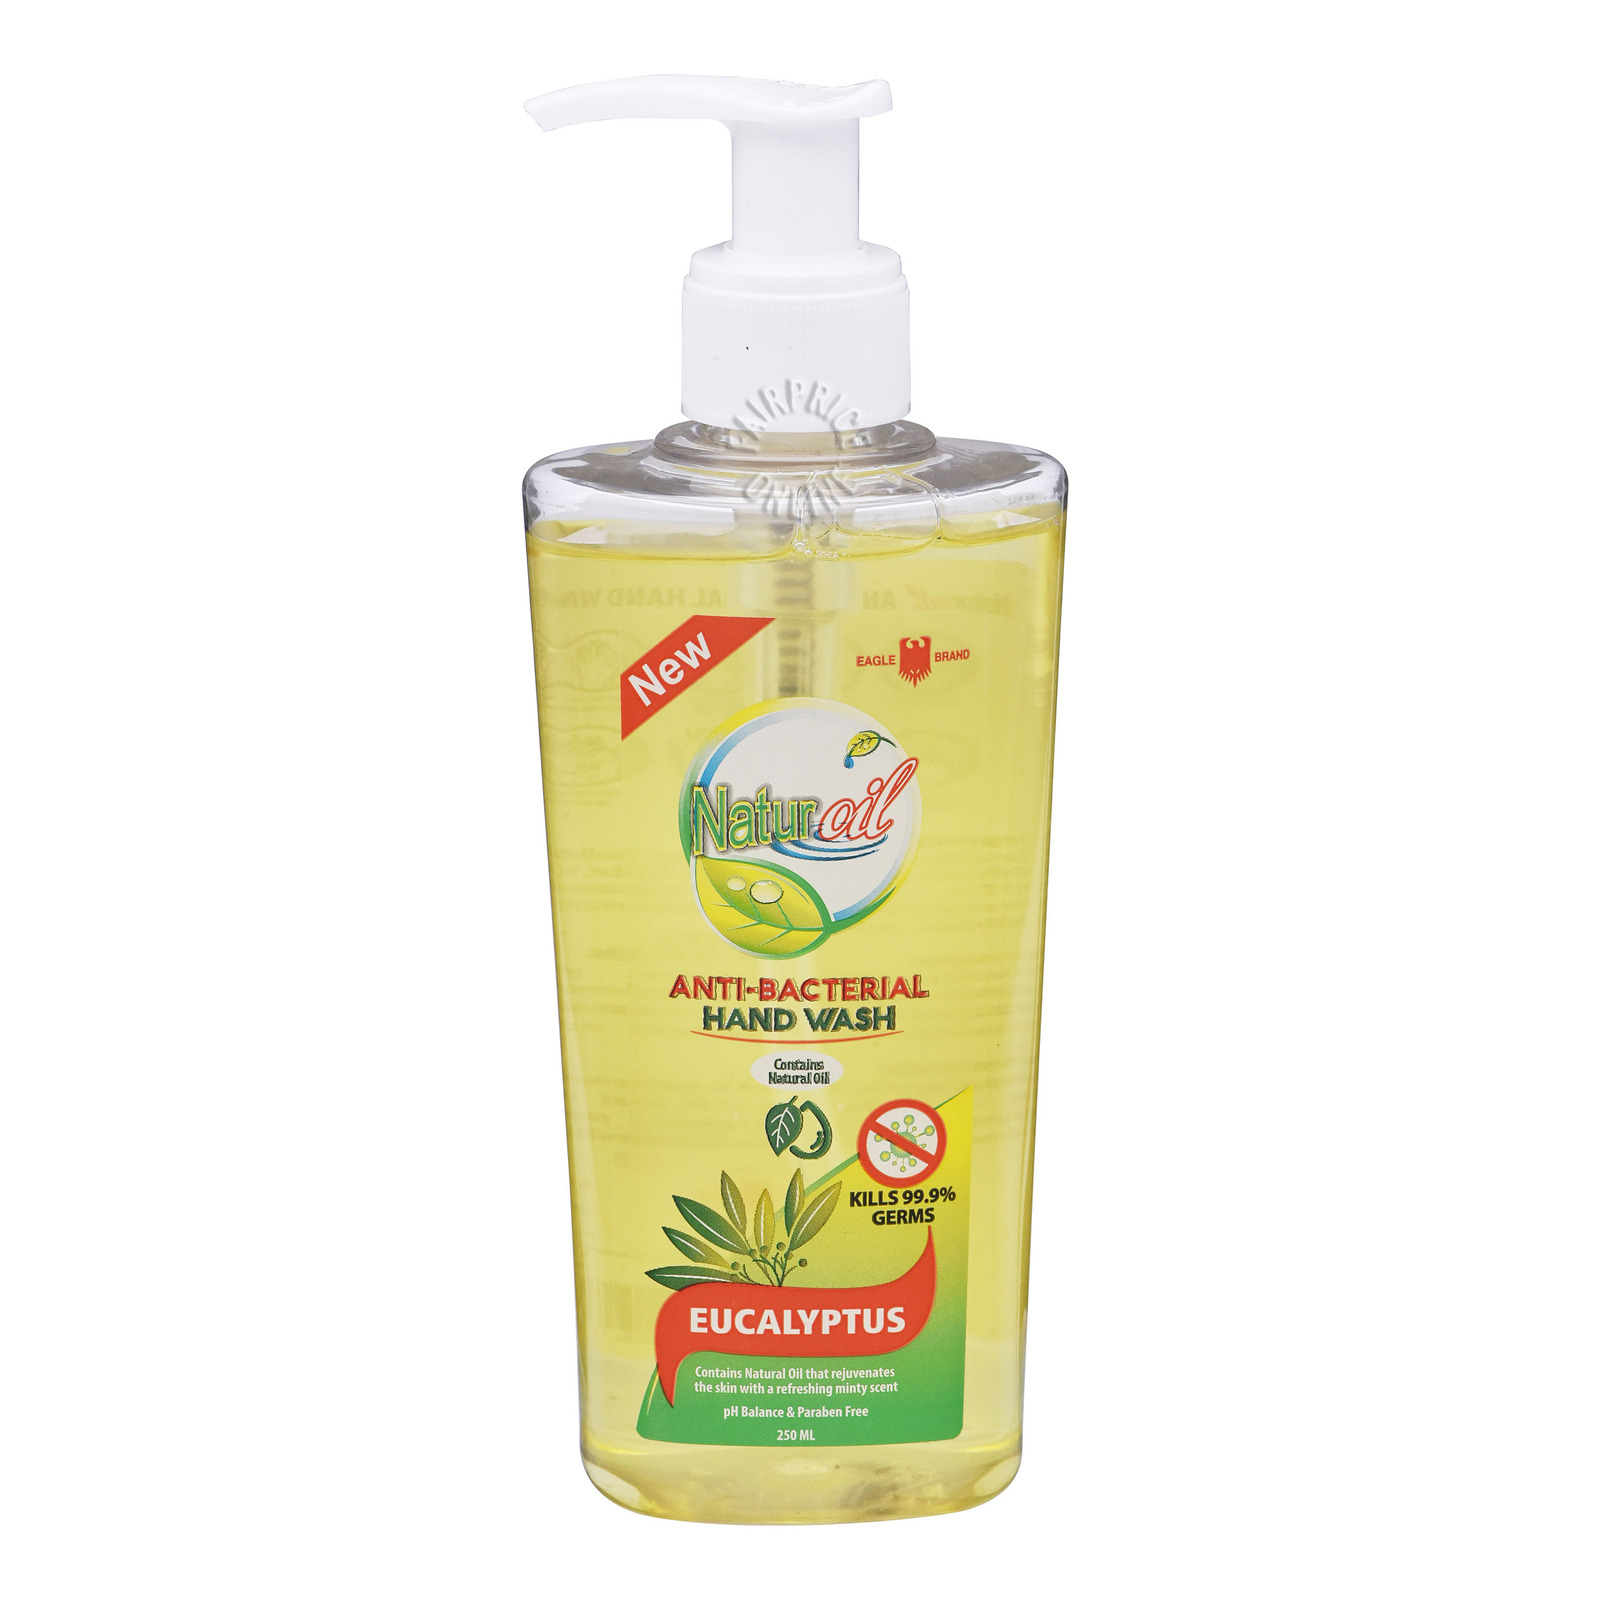 Eagle Brand Natur Oil Anti-Bacterial Hand Wash - Eucalyptus